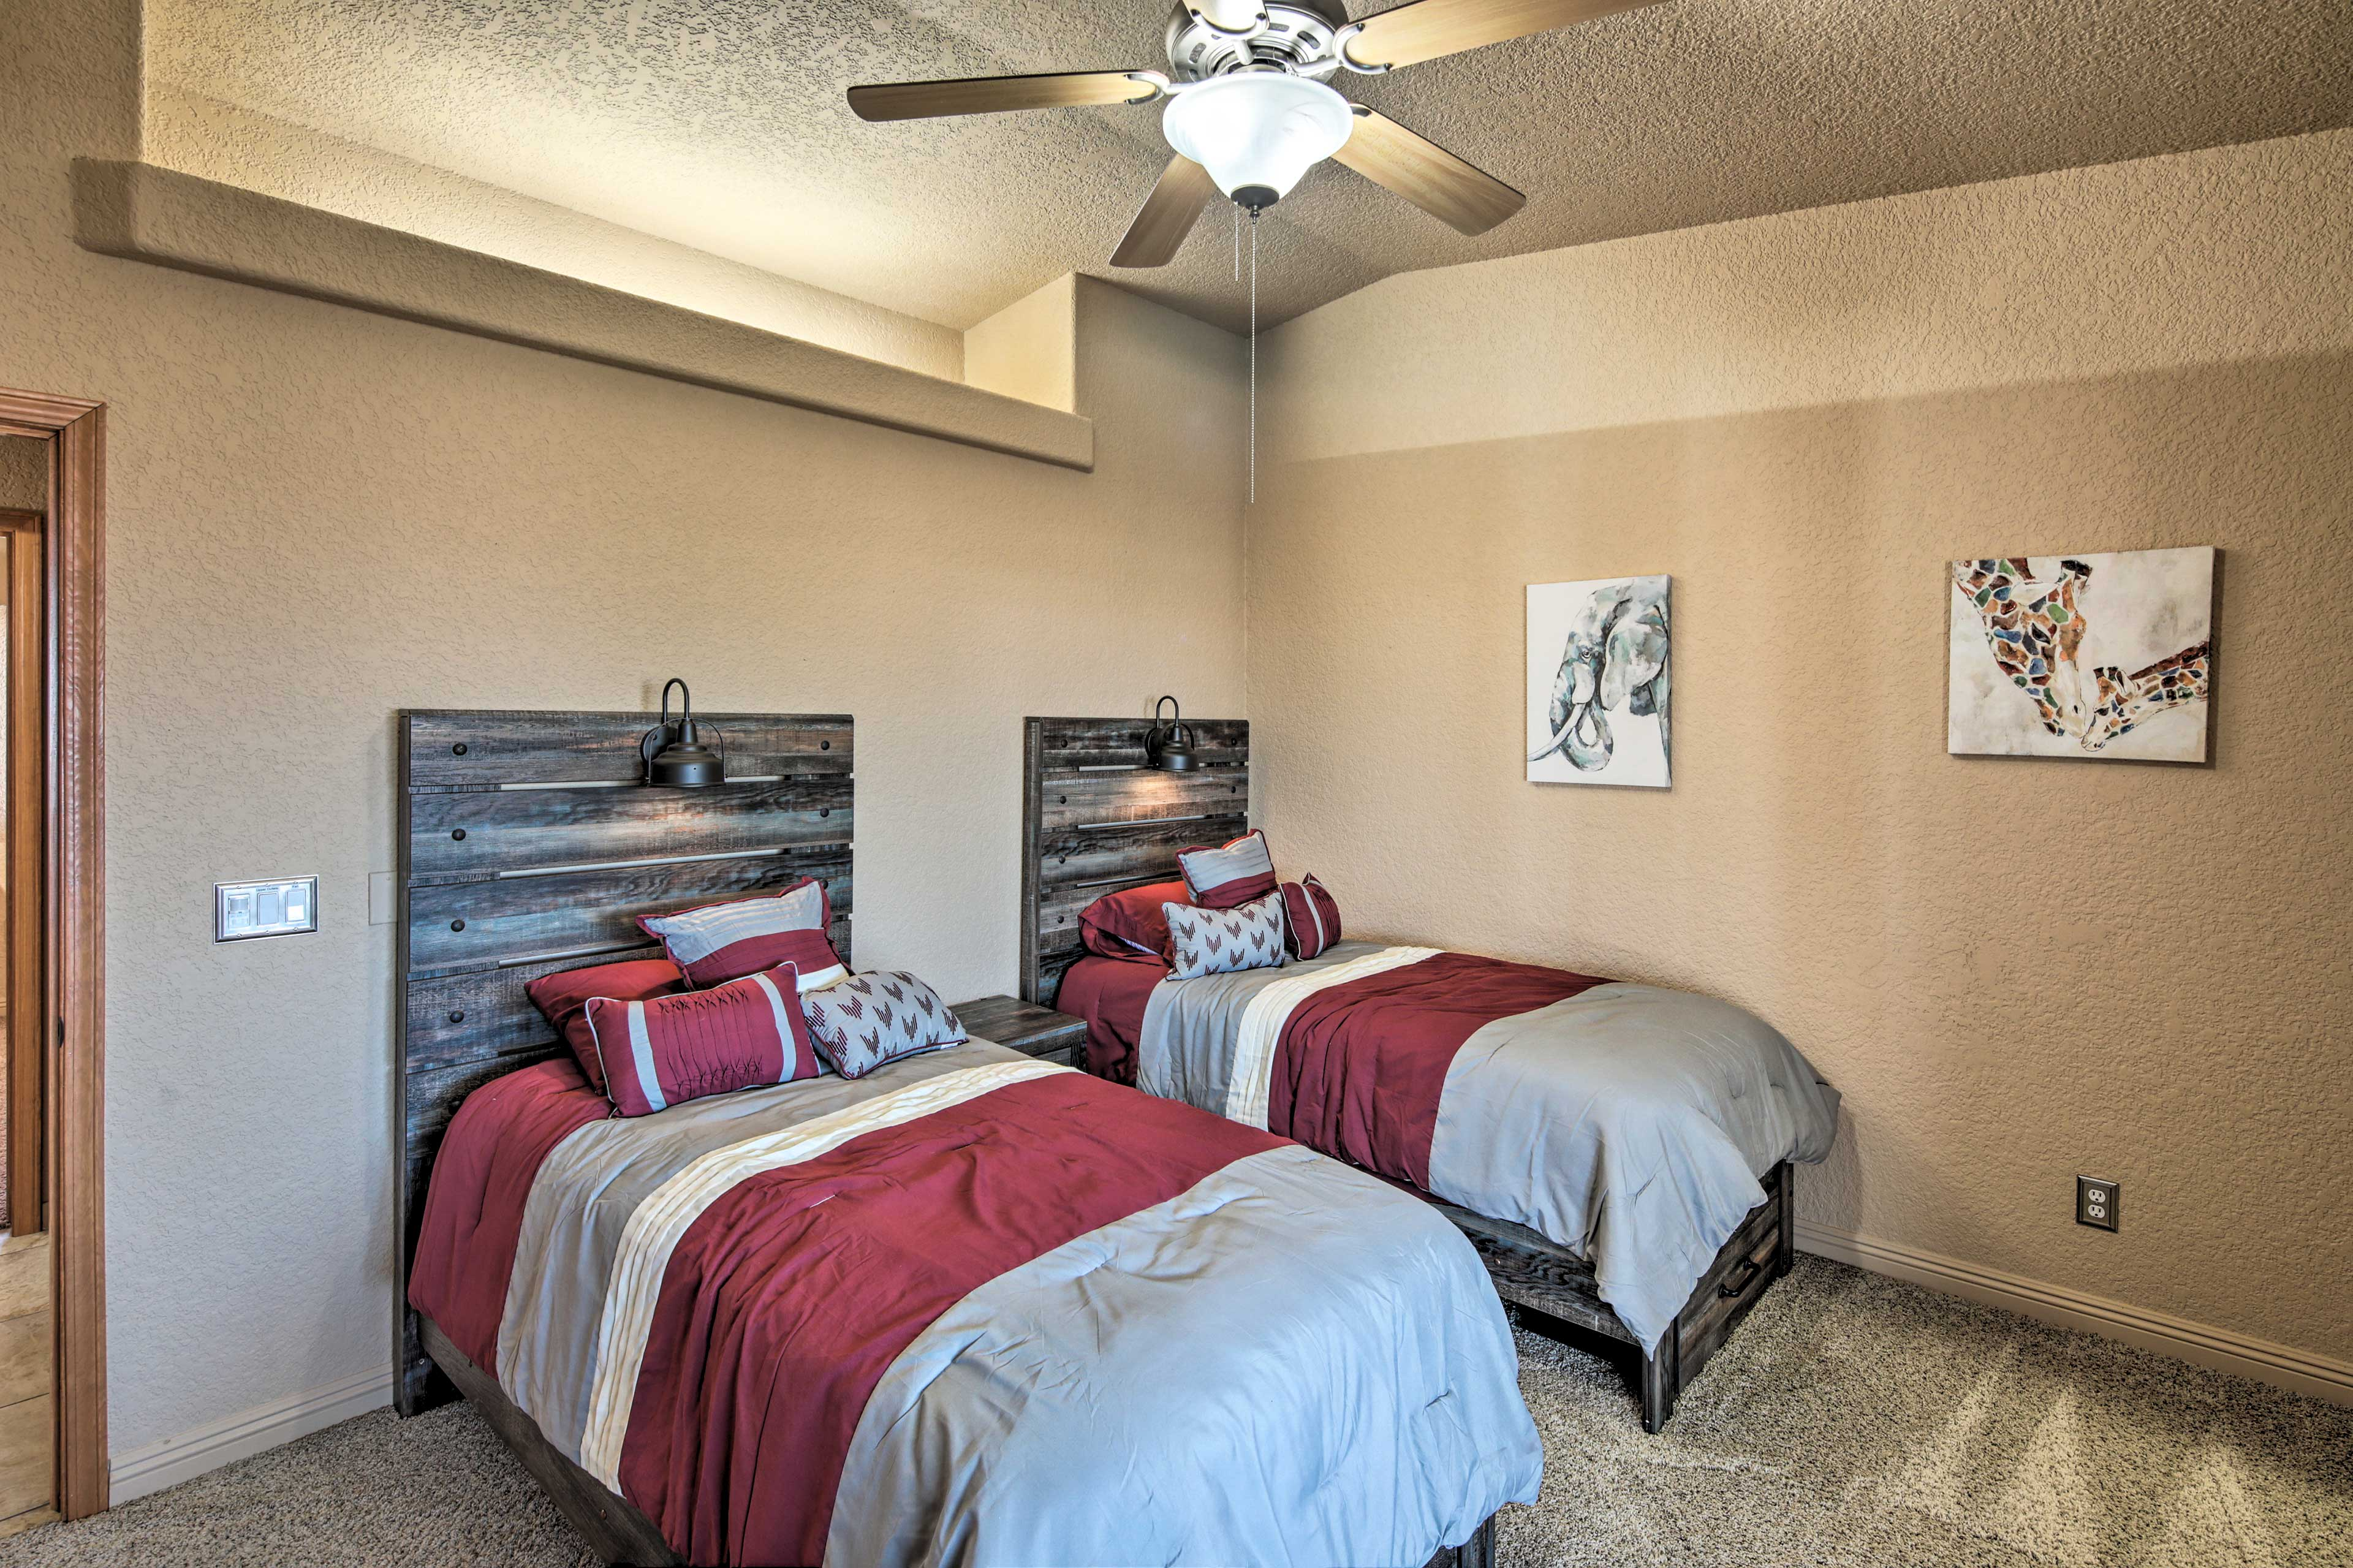 The kids are sure to love the 2 twin beds in the third bedroom.